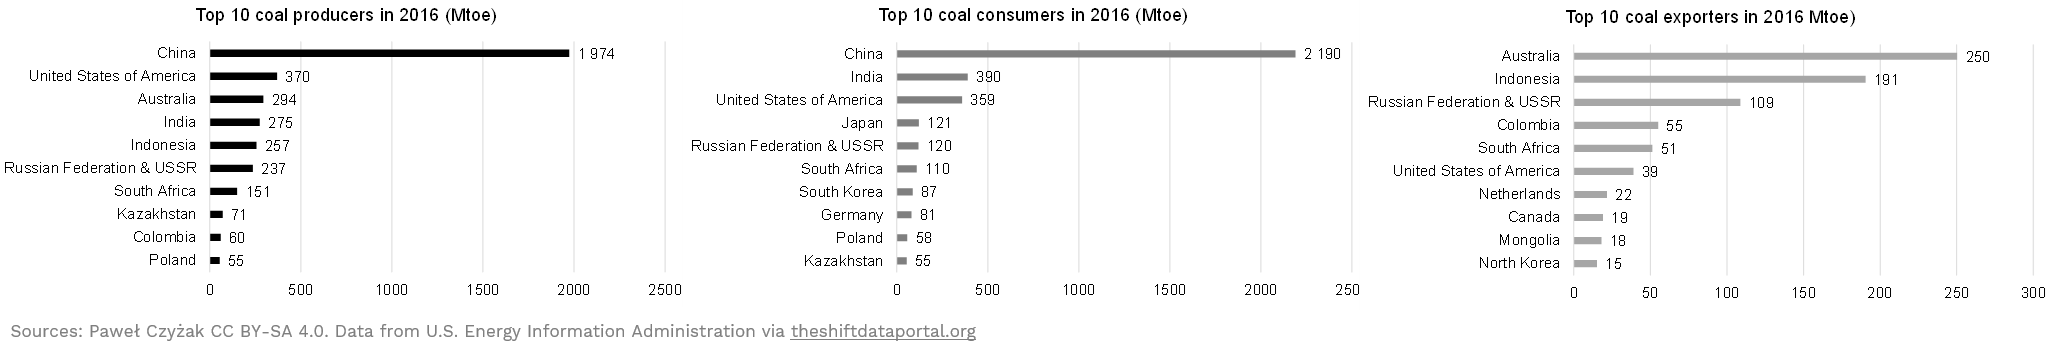 Coal producers and consumers